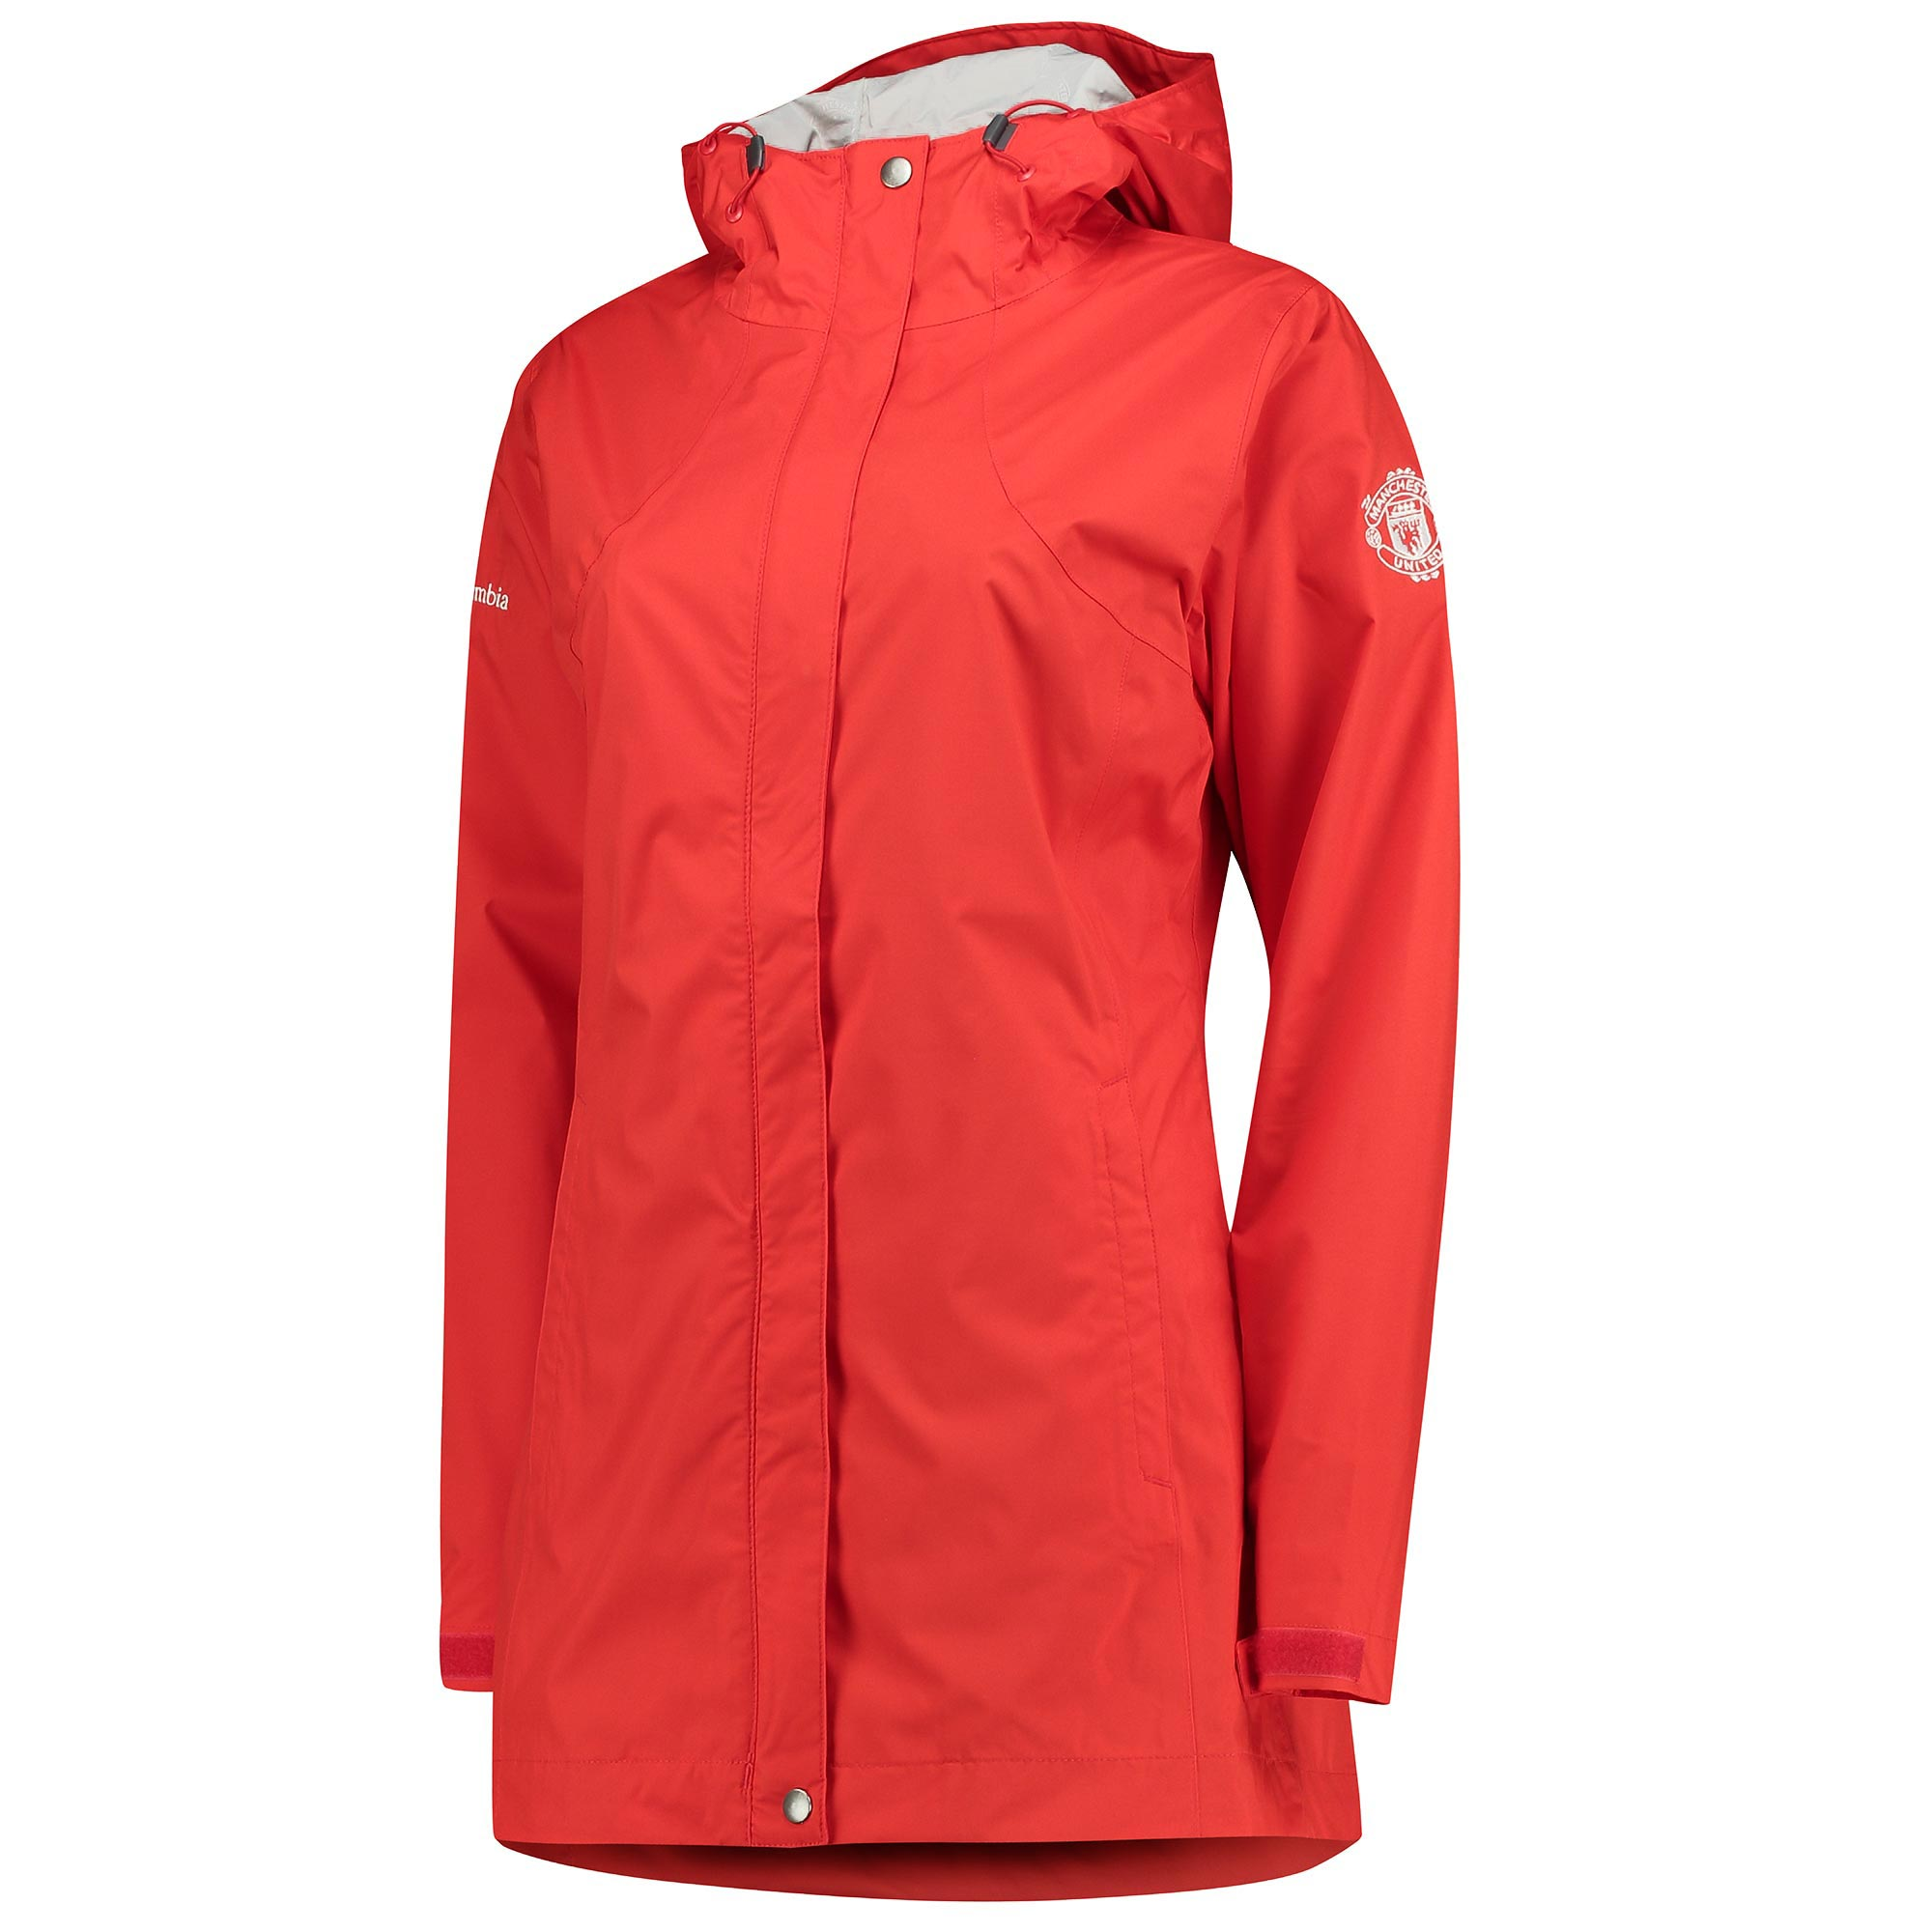 Manchester United Columbia Splash A Little Jacket - Cherrybomb - Women